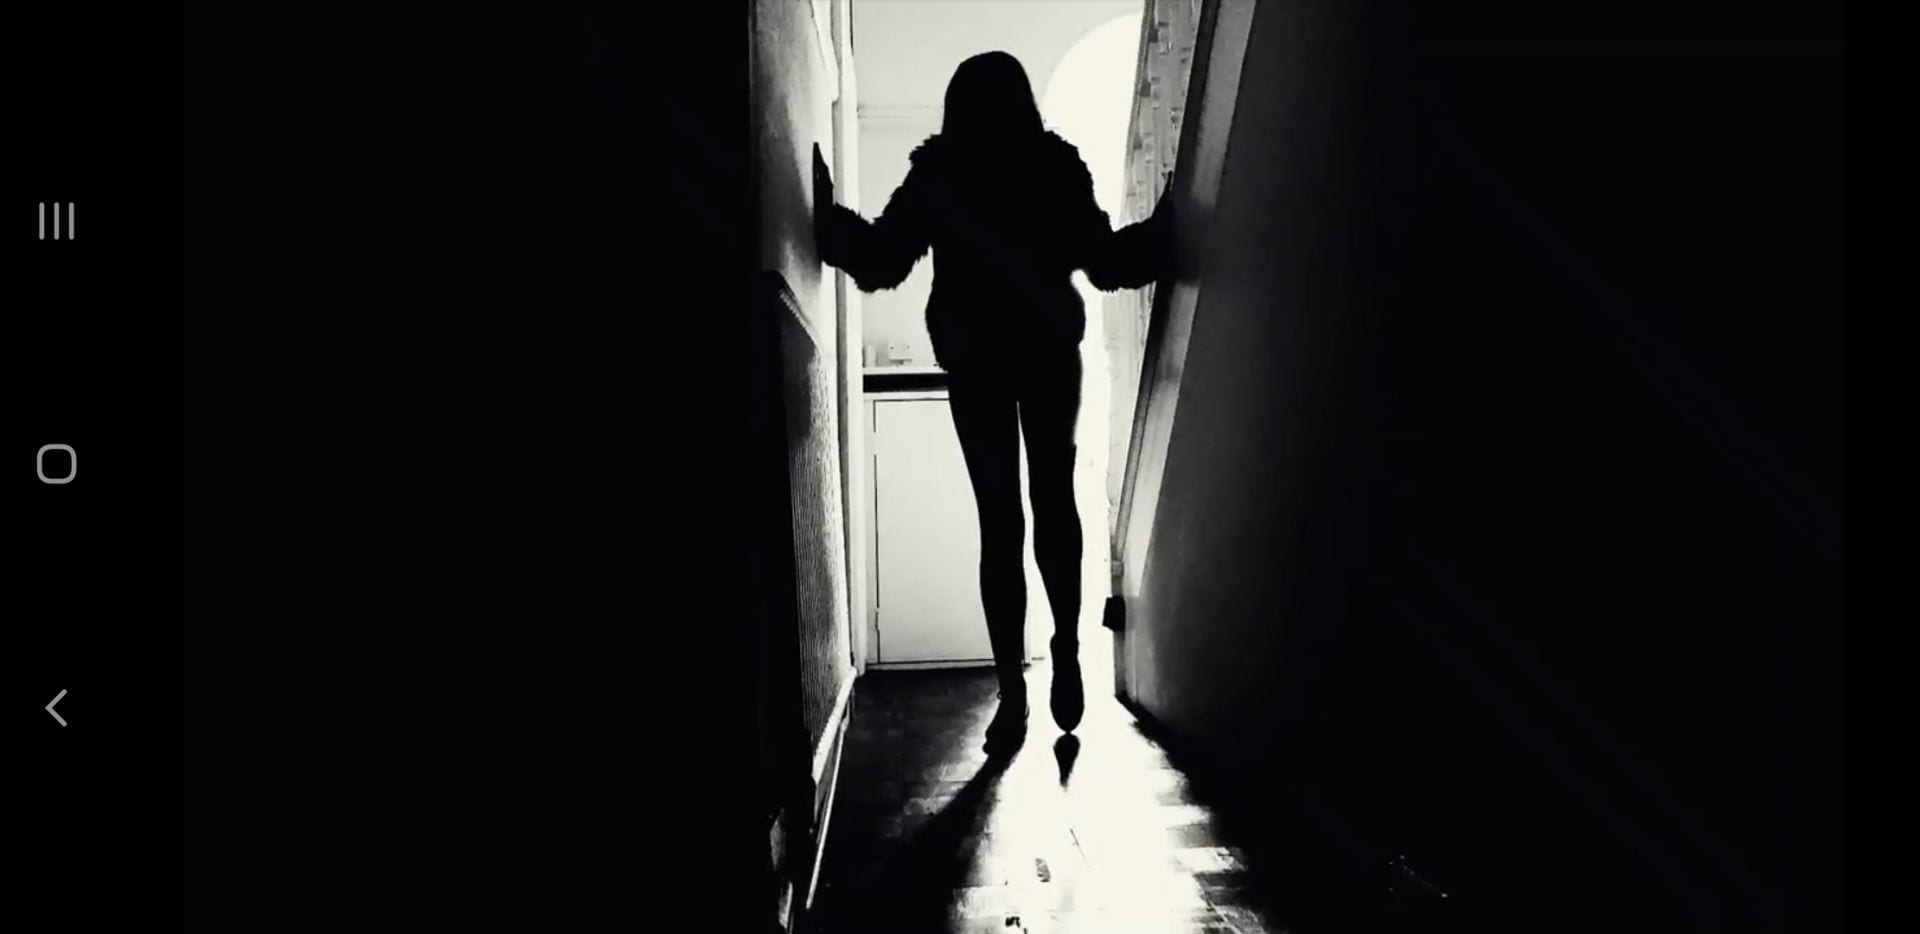 Black & white image of a person walking down a hallway.